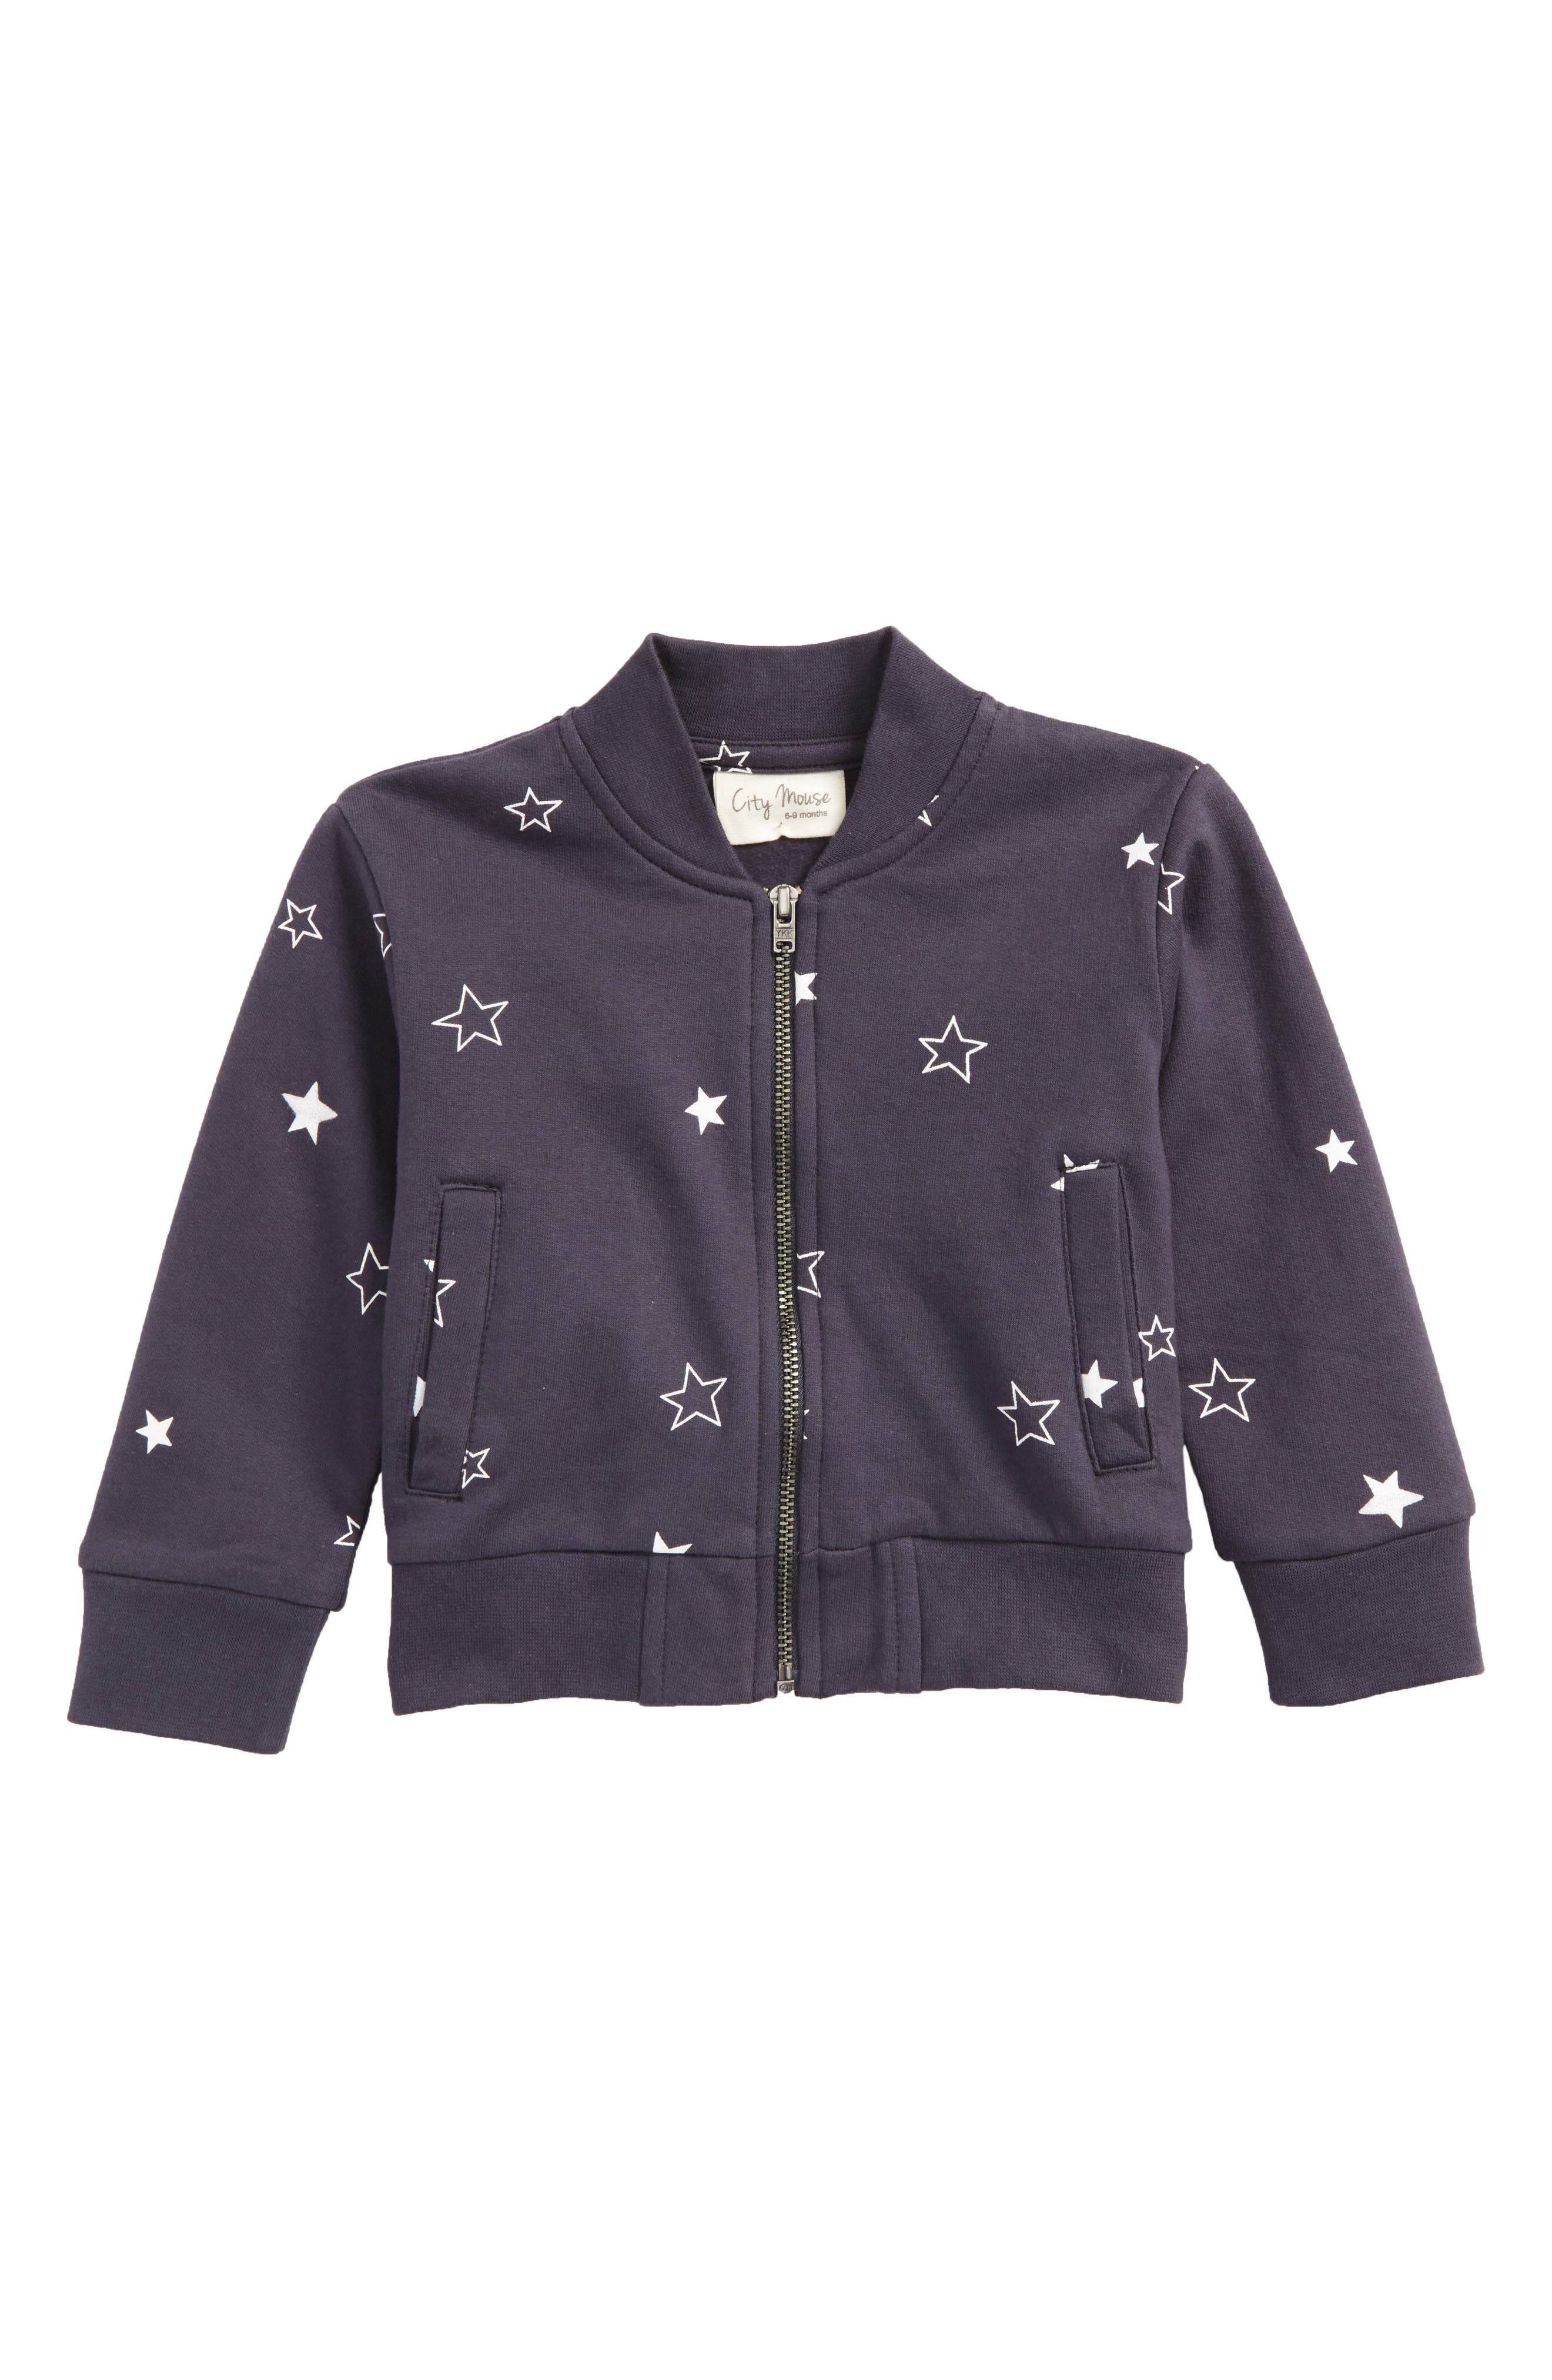 City Mouse Star Print Baseball Jacket (Baby)